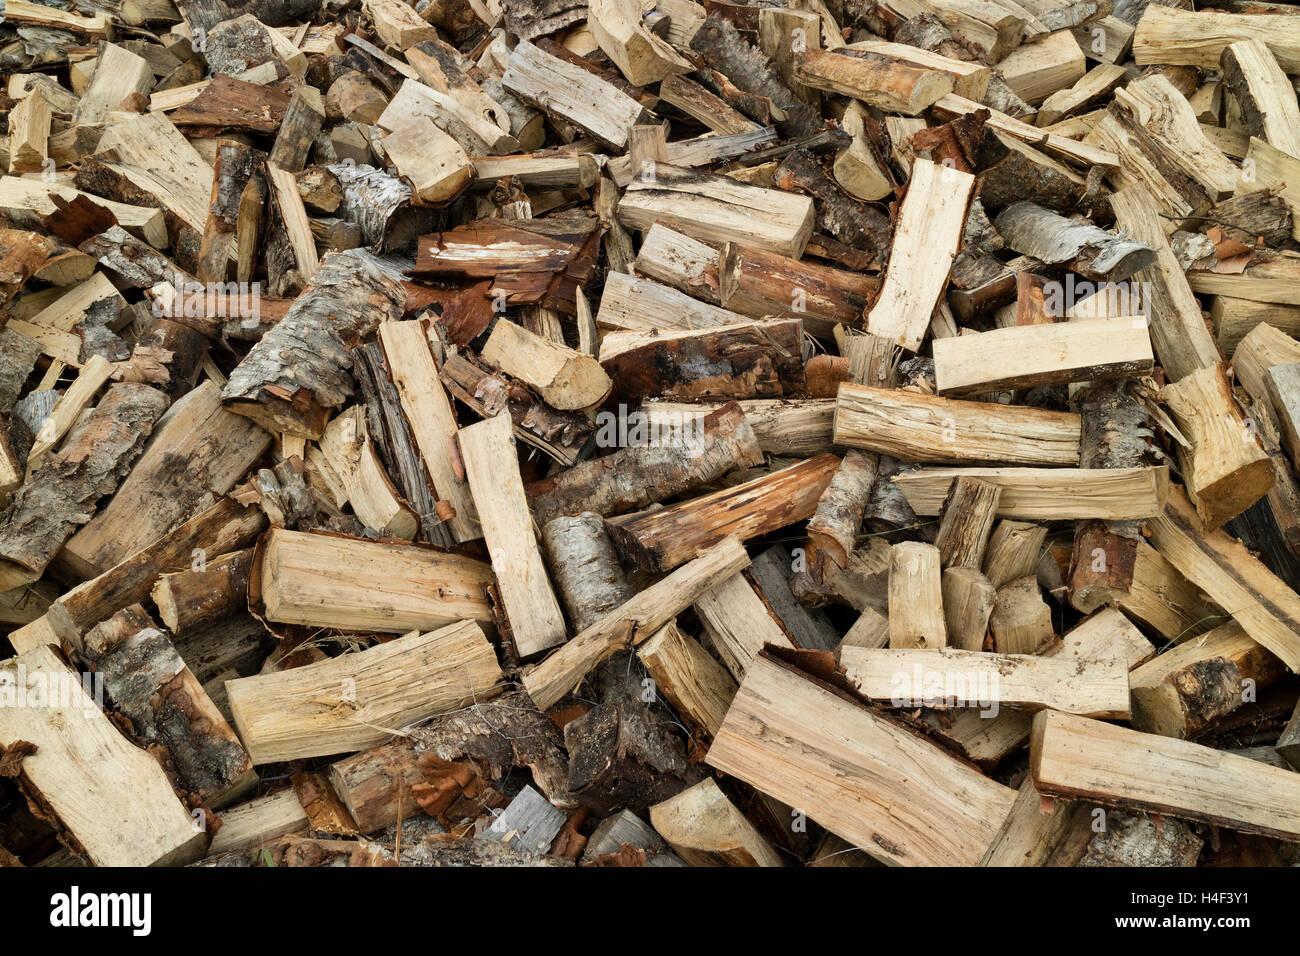 Firewood pile of wood cuttings for heating - Stock Image